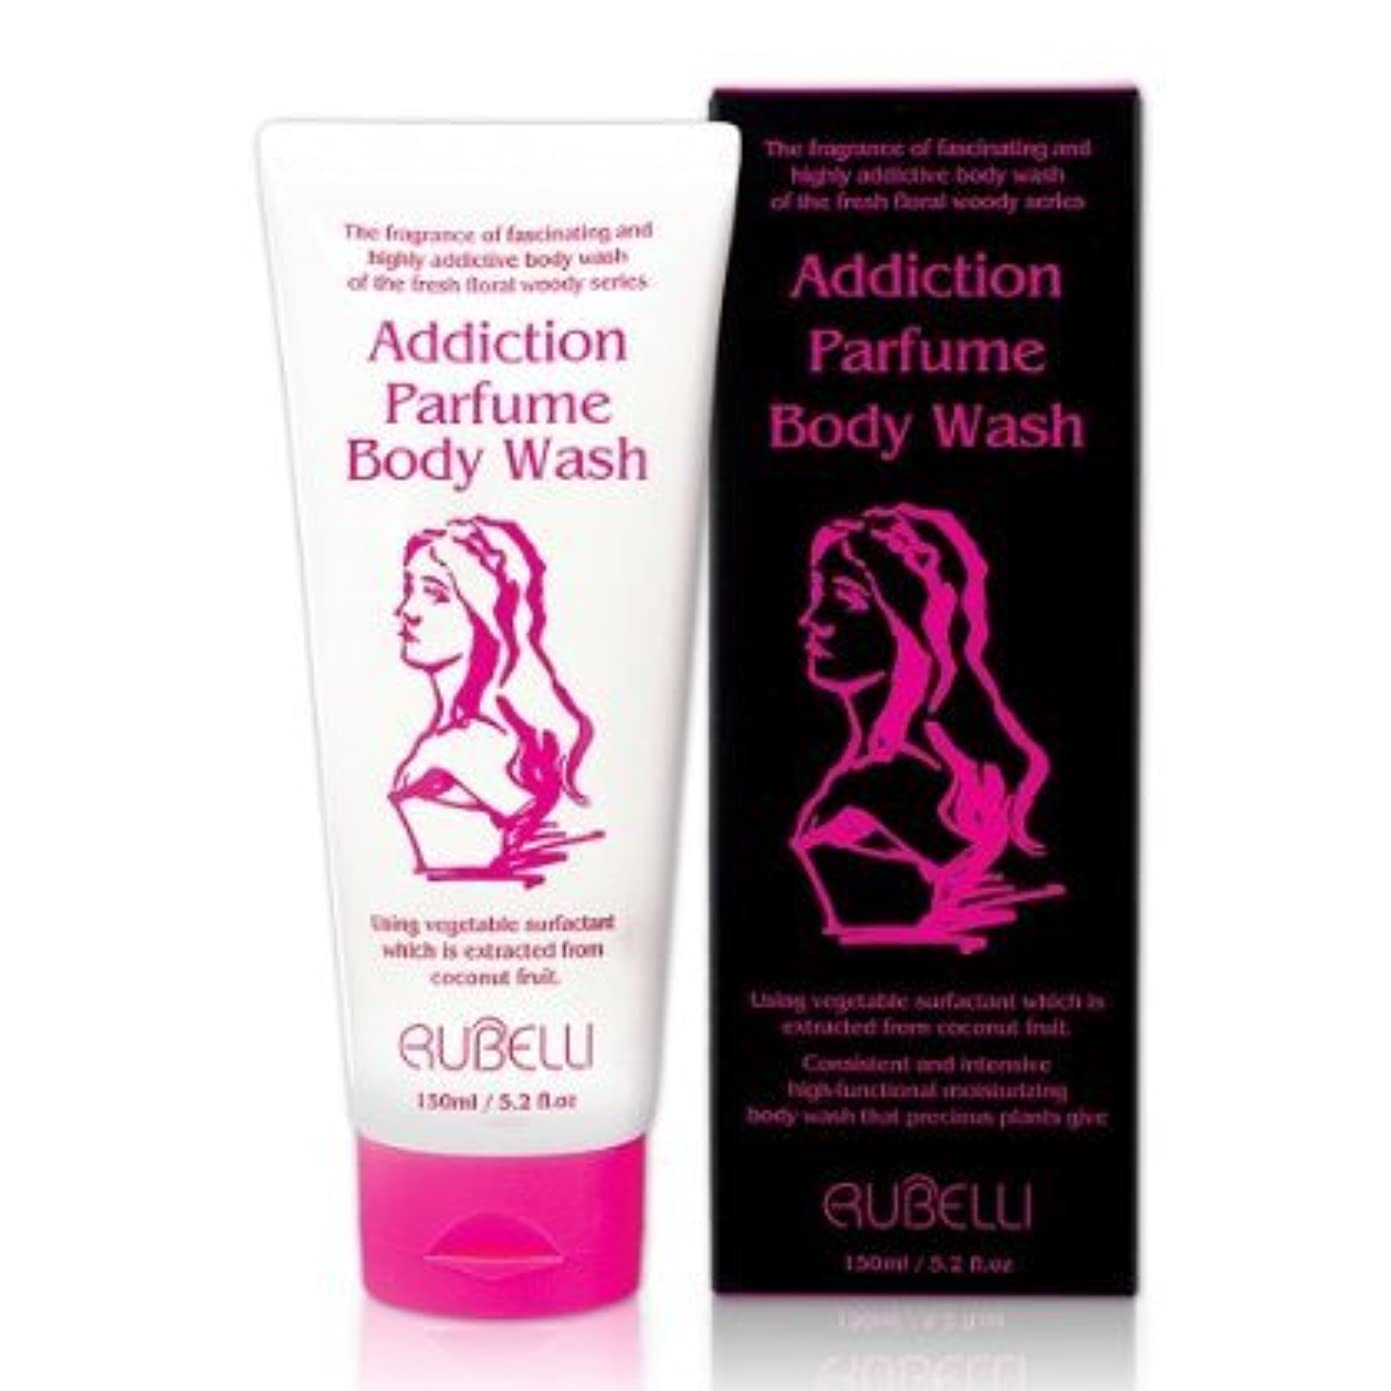 [Rubelli]+[addiction parfume body wash]+[150ml / high-functional moisturizing, floral scent parfume body wash,...